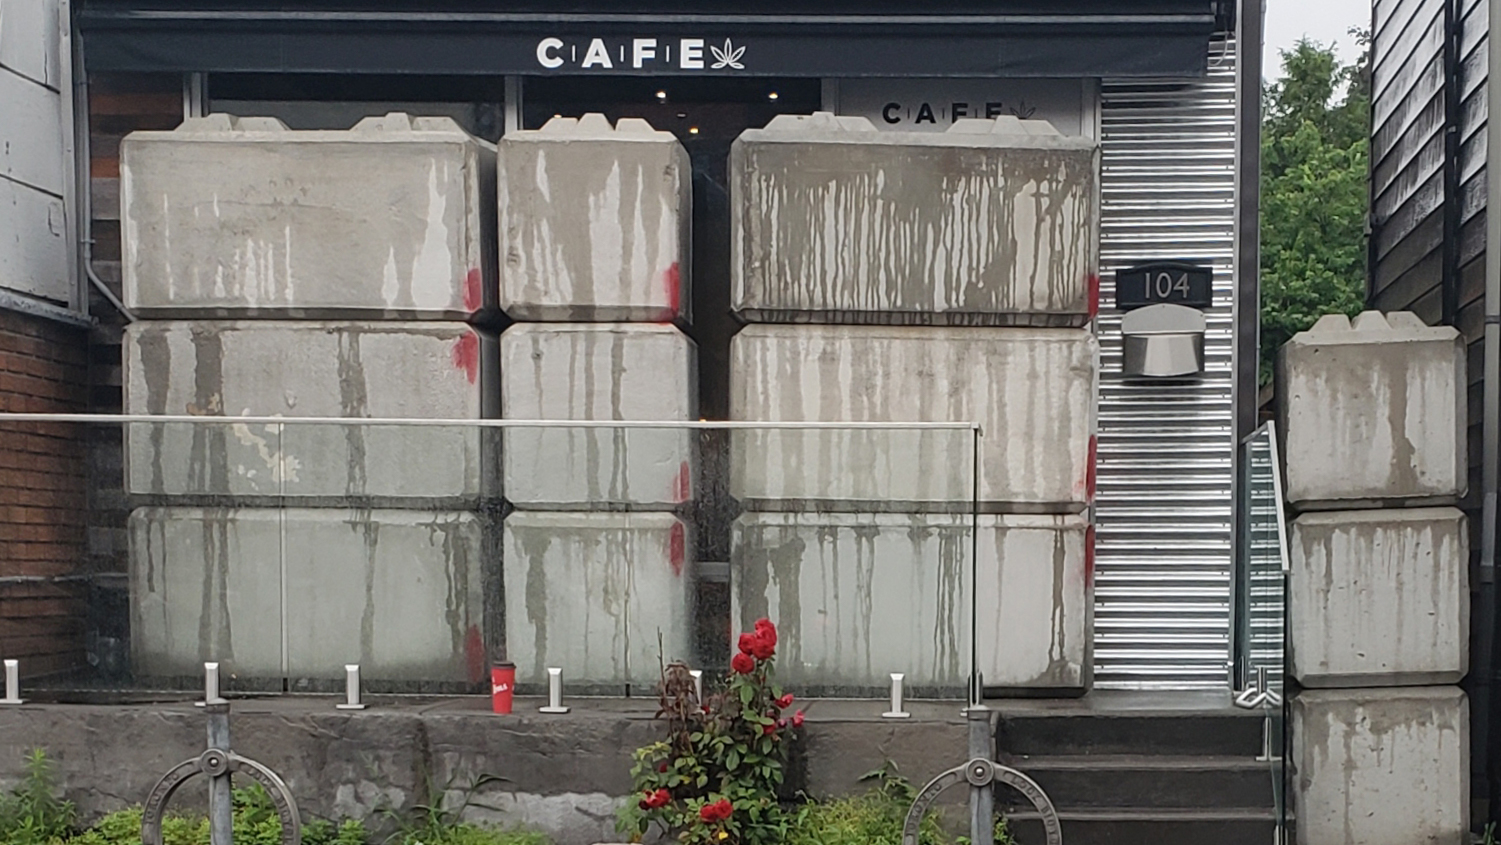 A Man Got Trapped Inside a Concrete-Entombed Weed Shop in Toronto - VICE